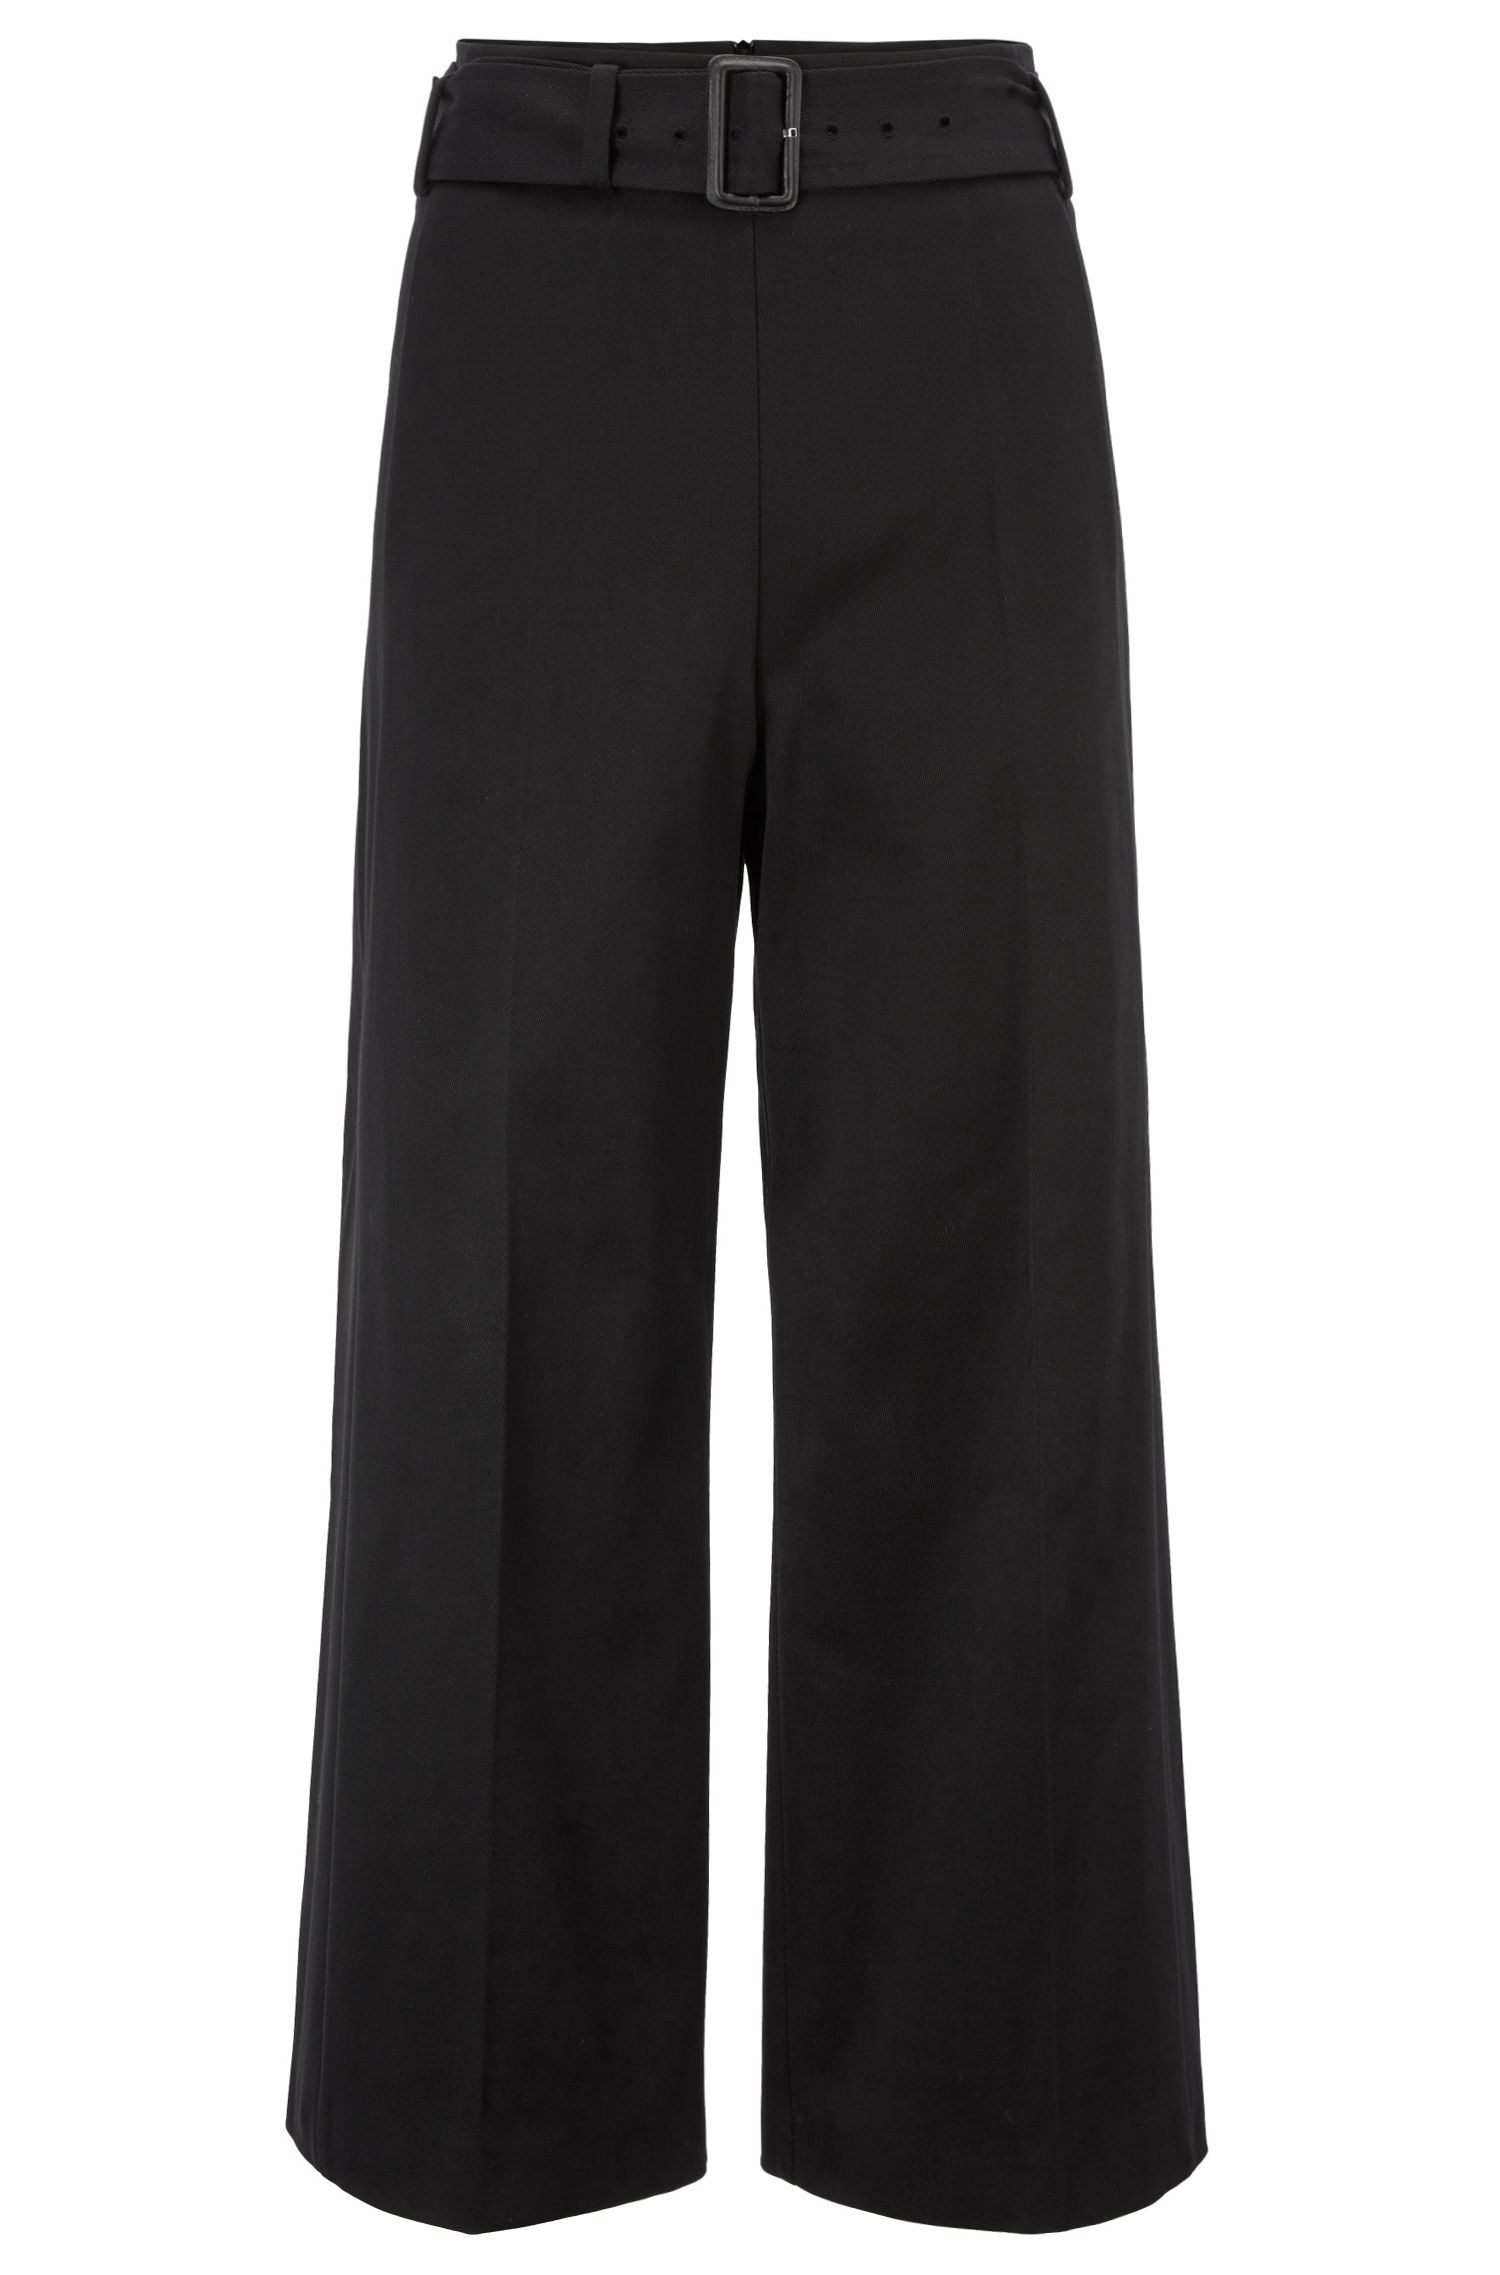 Cropped wide-leg trousers in Italian cotton twill, Black